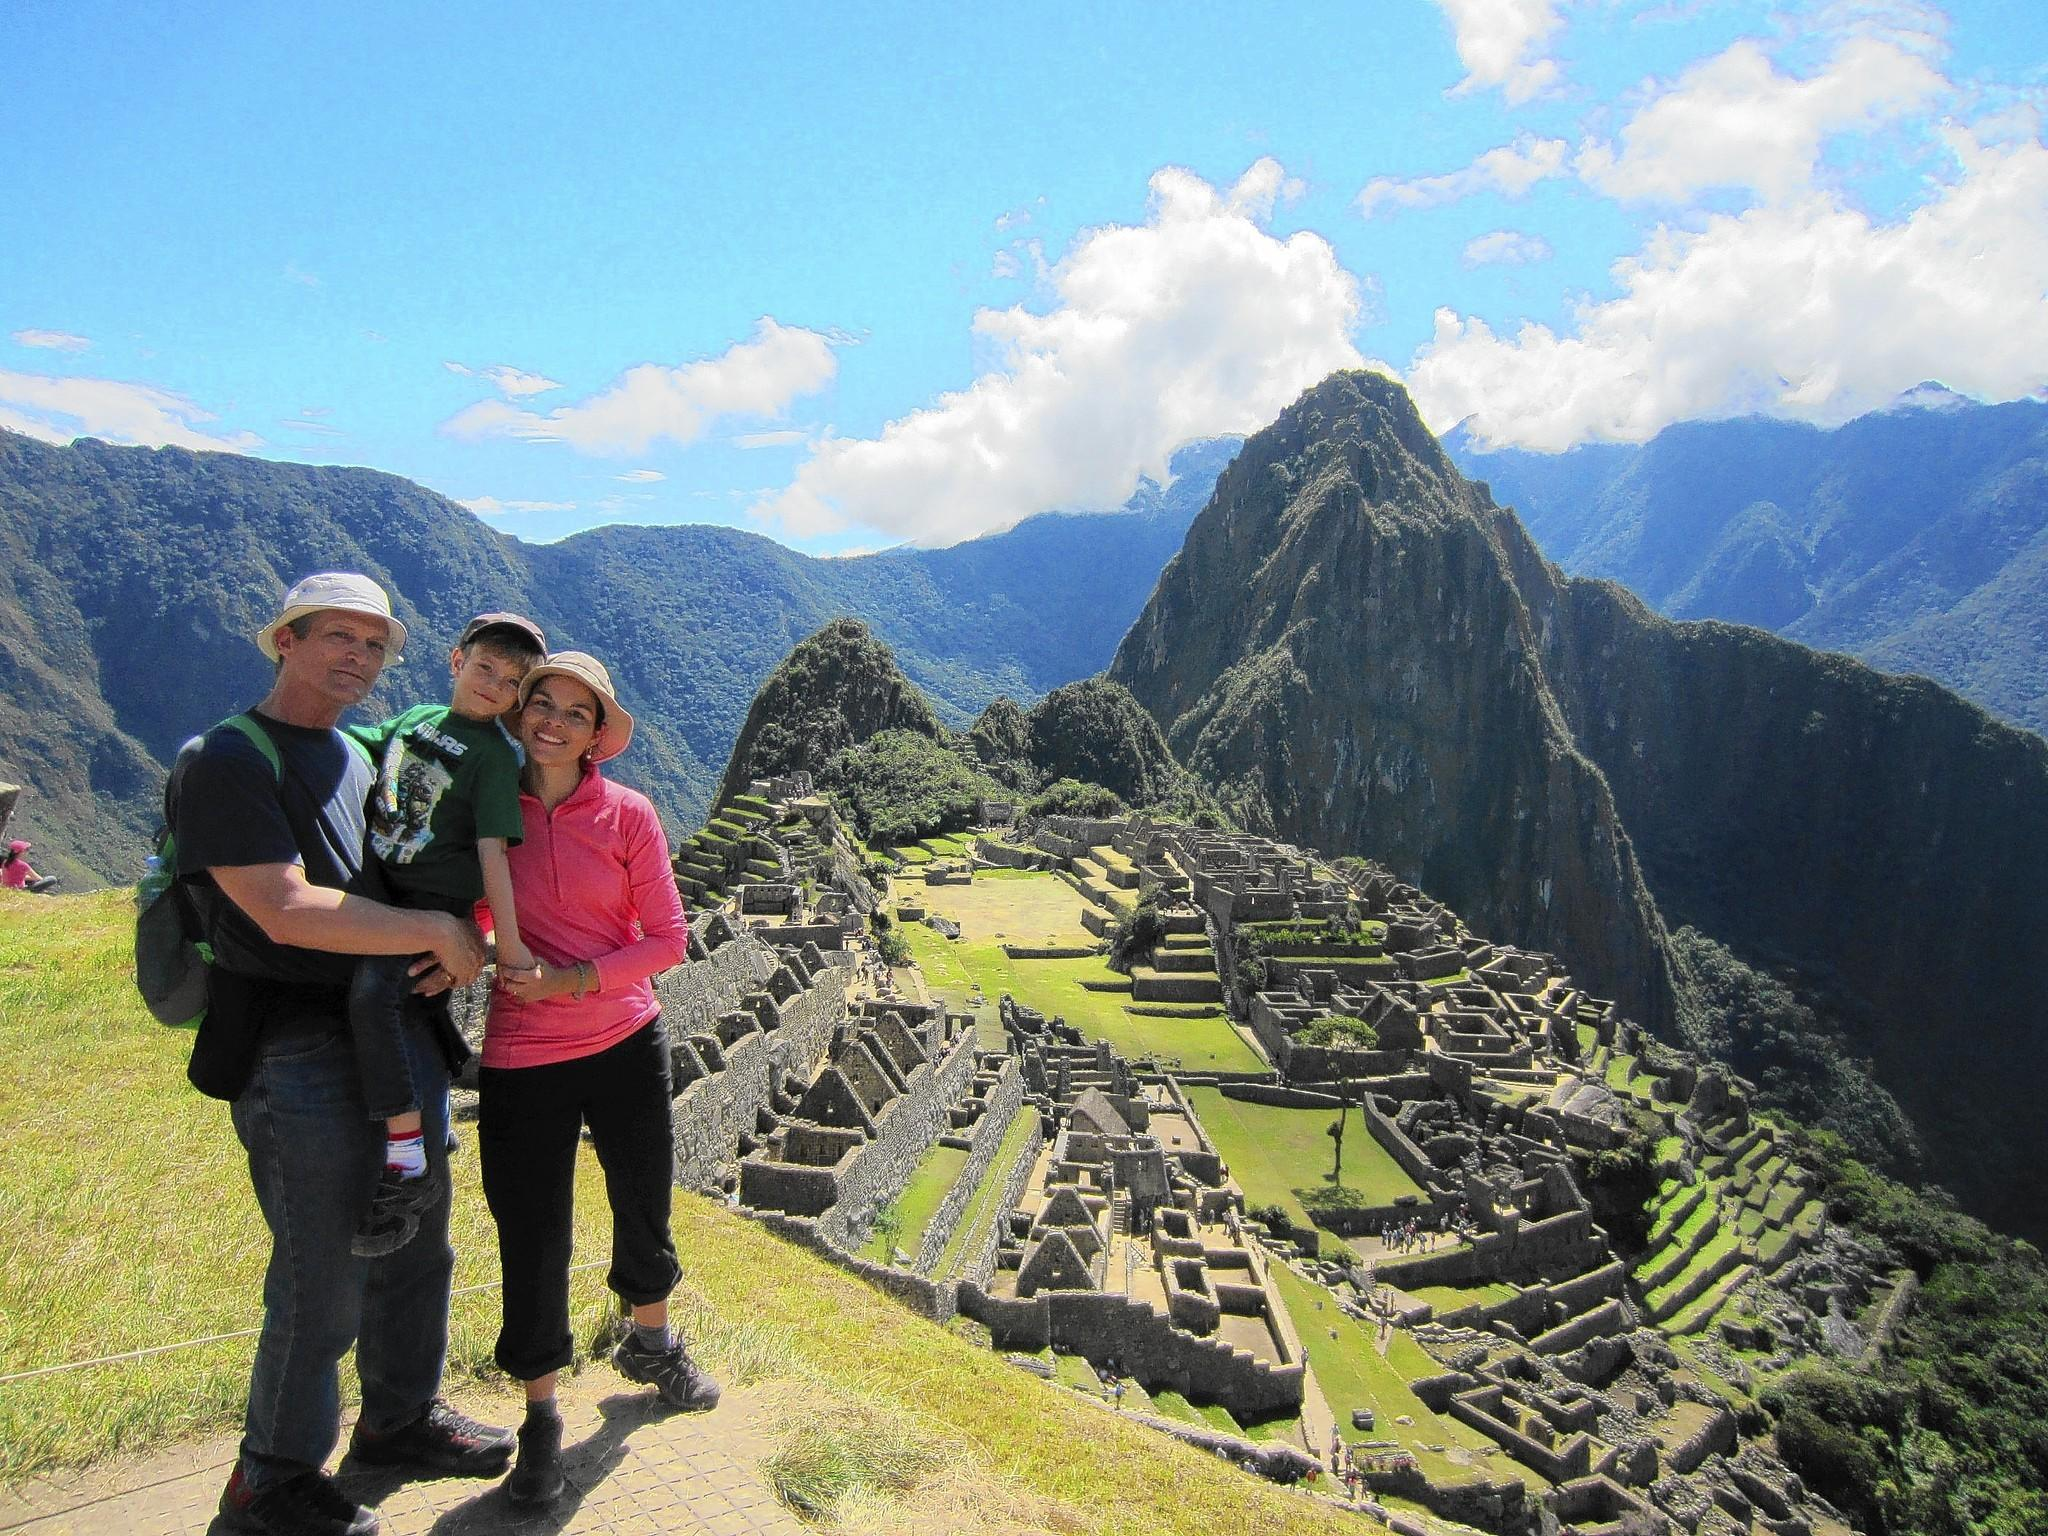 Daily Press staff writer Mark St. John Erickson, his son, Owen, and wife, Miriam Stawowy, stop for a family picture on a scenic overlook high above the world-famous mountain-top ruins of Peru's Machu Picchu.